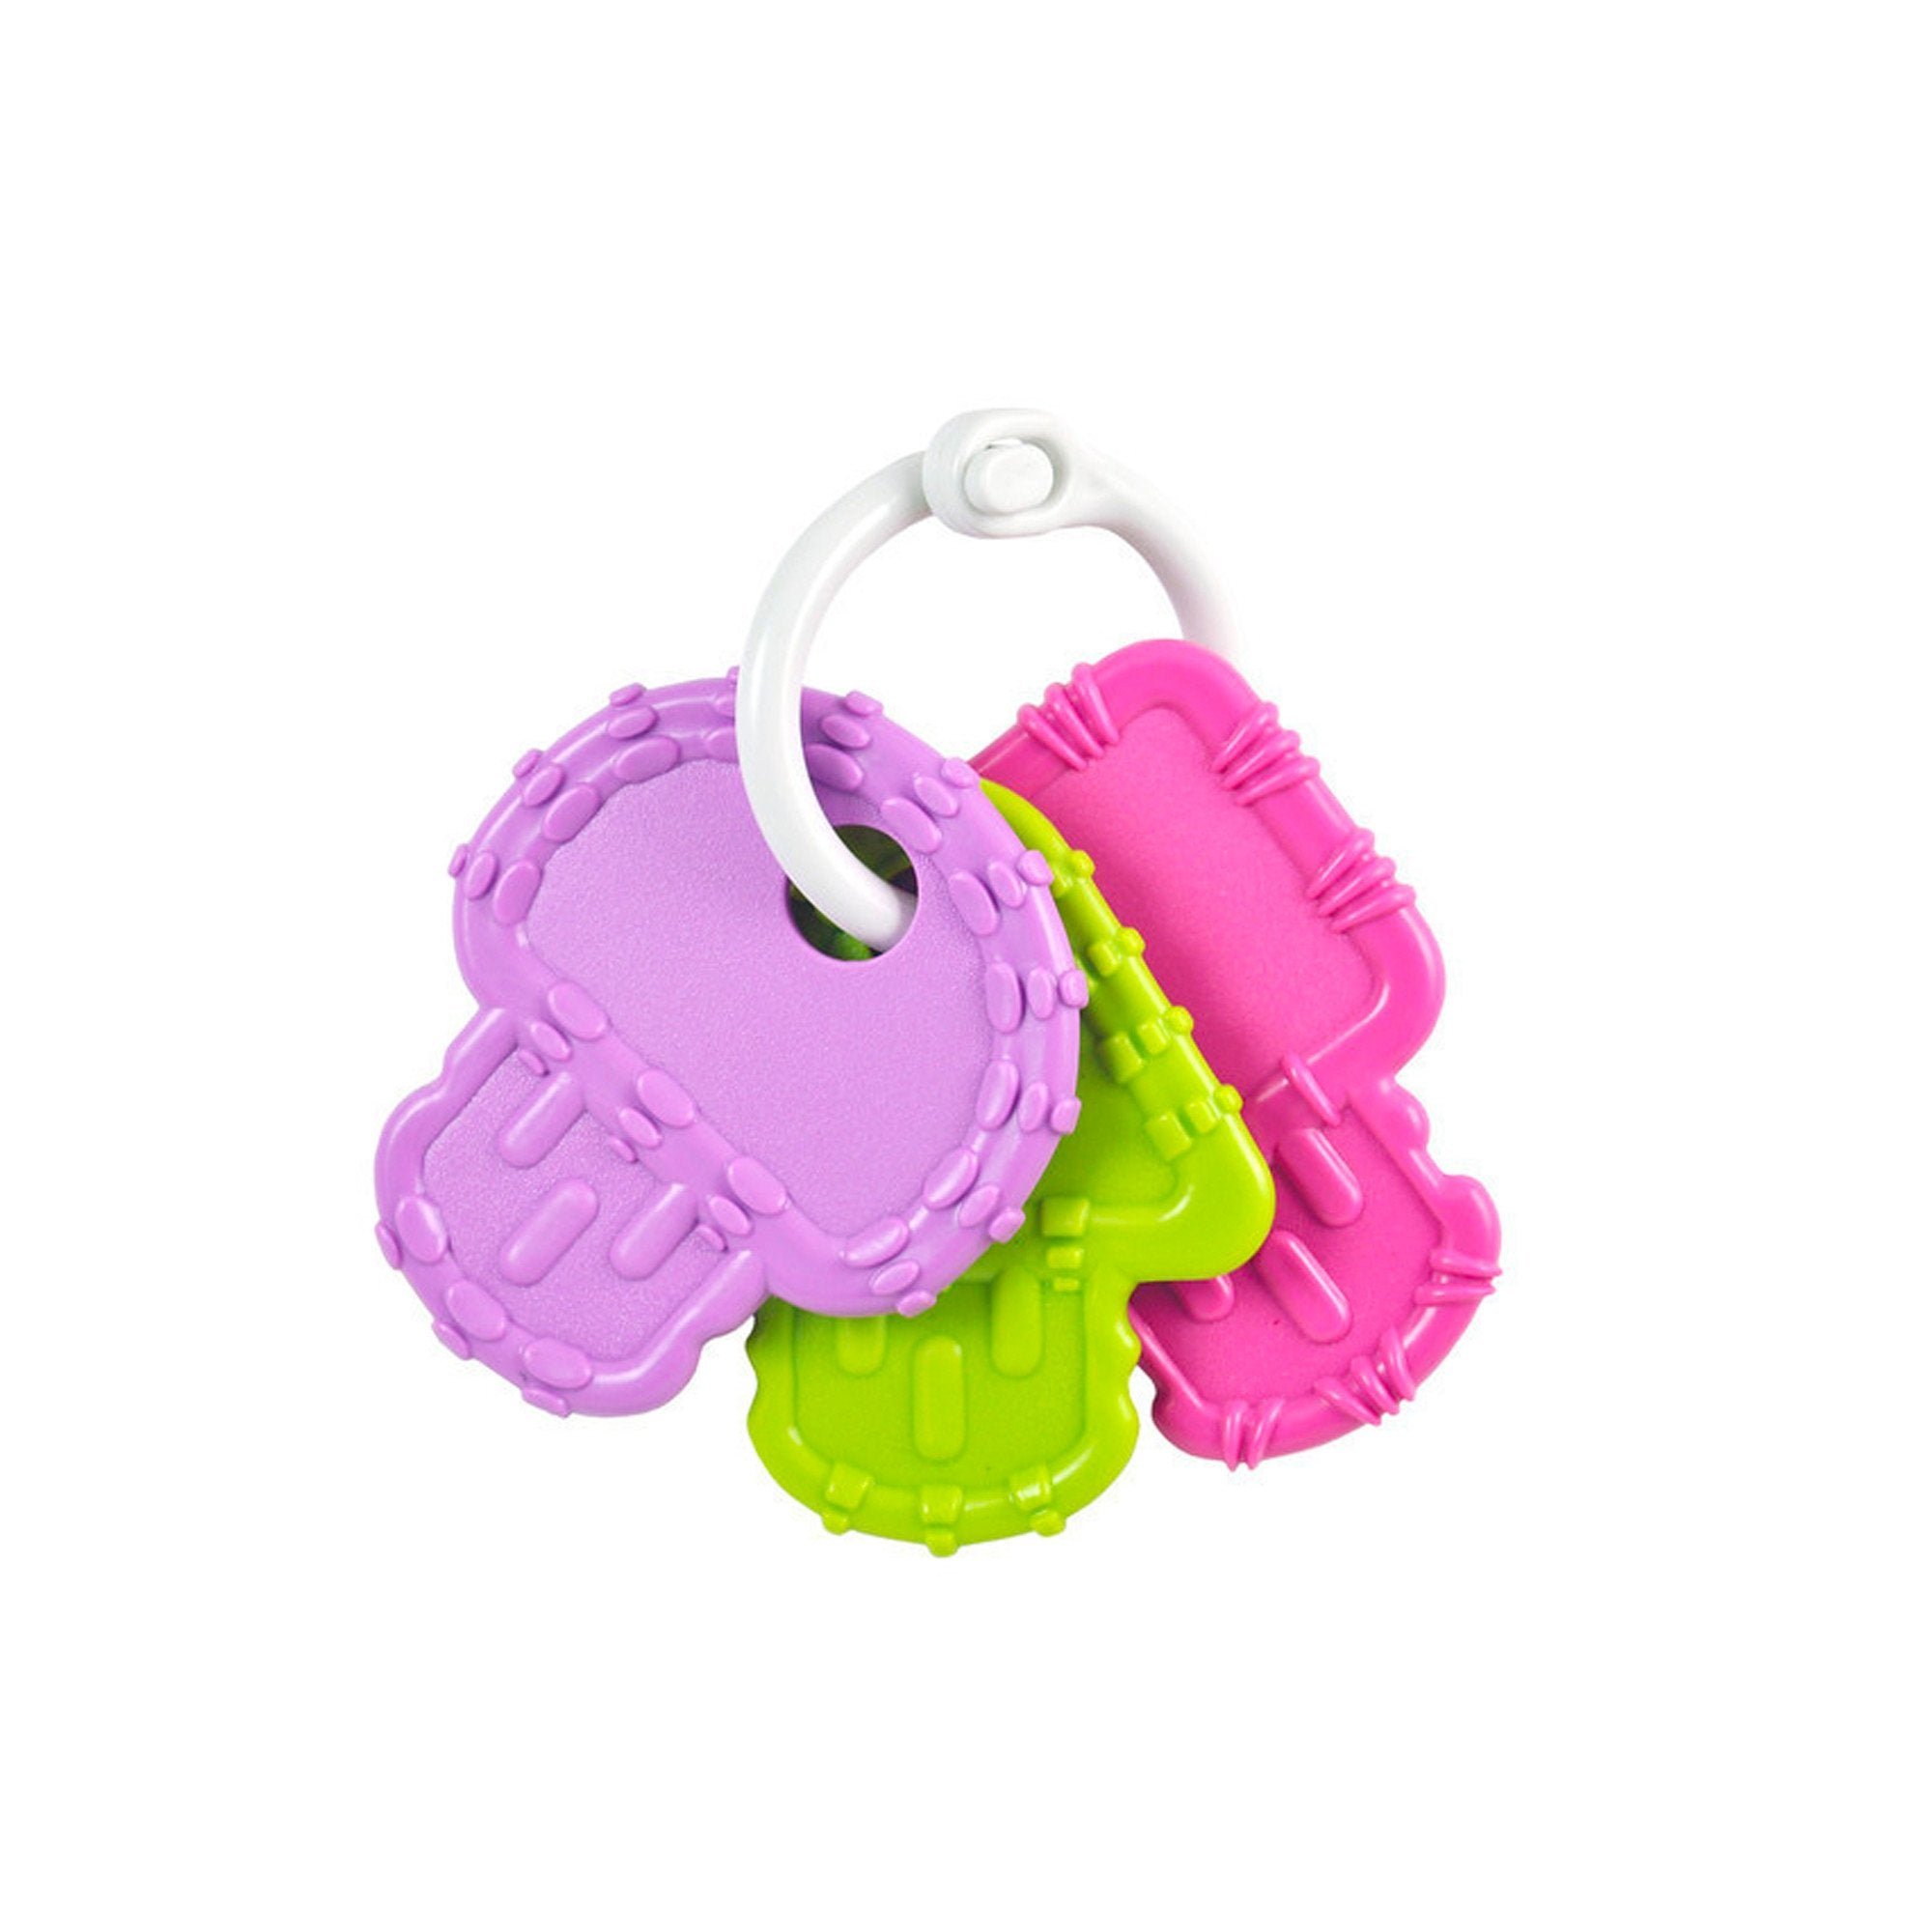 Replay Teether Key Set - BPA Free Recycled Plastic Replay Dummies and Teethers Pinks at Little Earth Nest Eco Shop